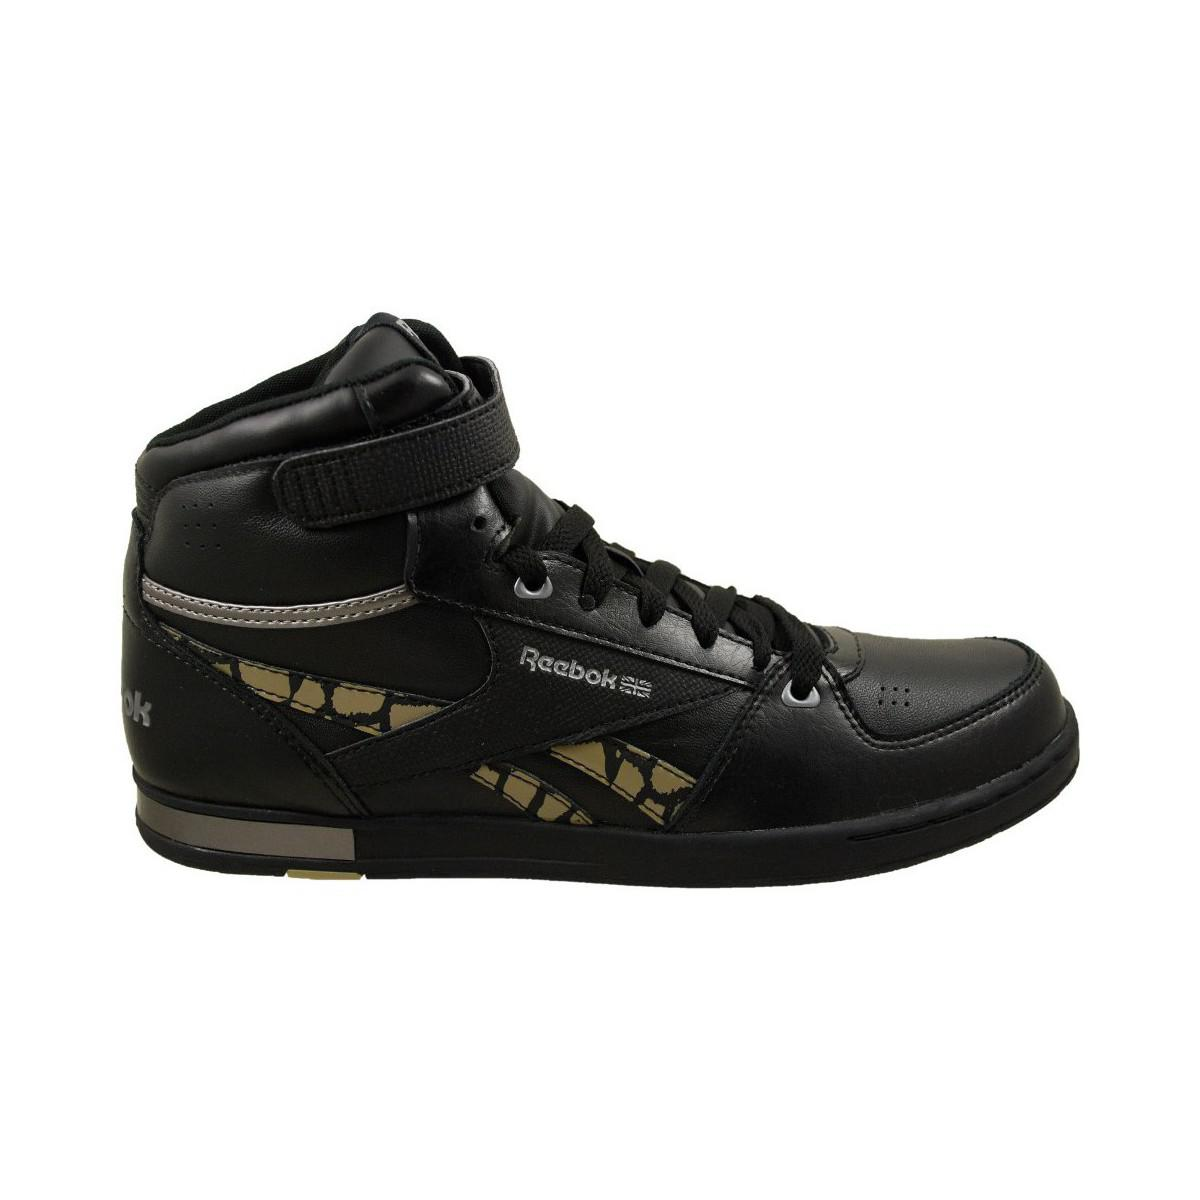 011c368f5ac1 Reebok Cl Hialeah Mid Women s Shoes (high-top Trainers) In Black in ...